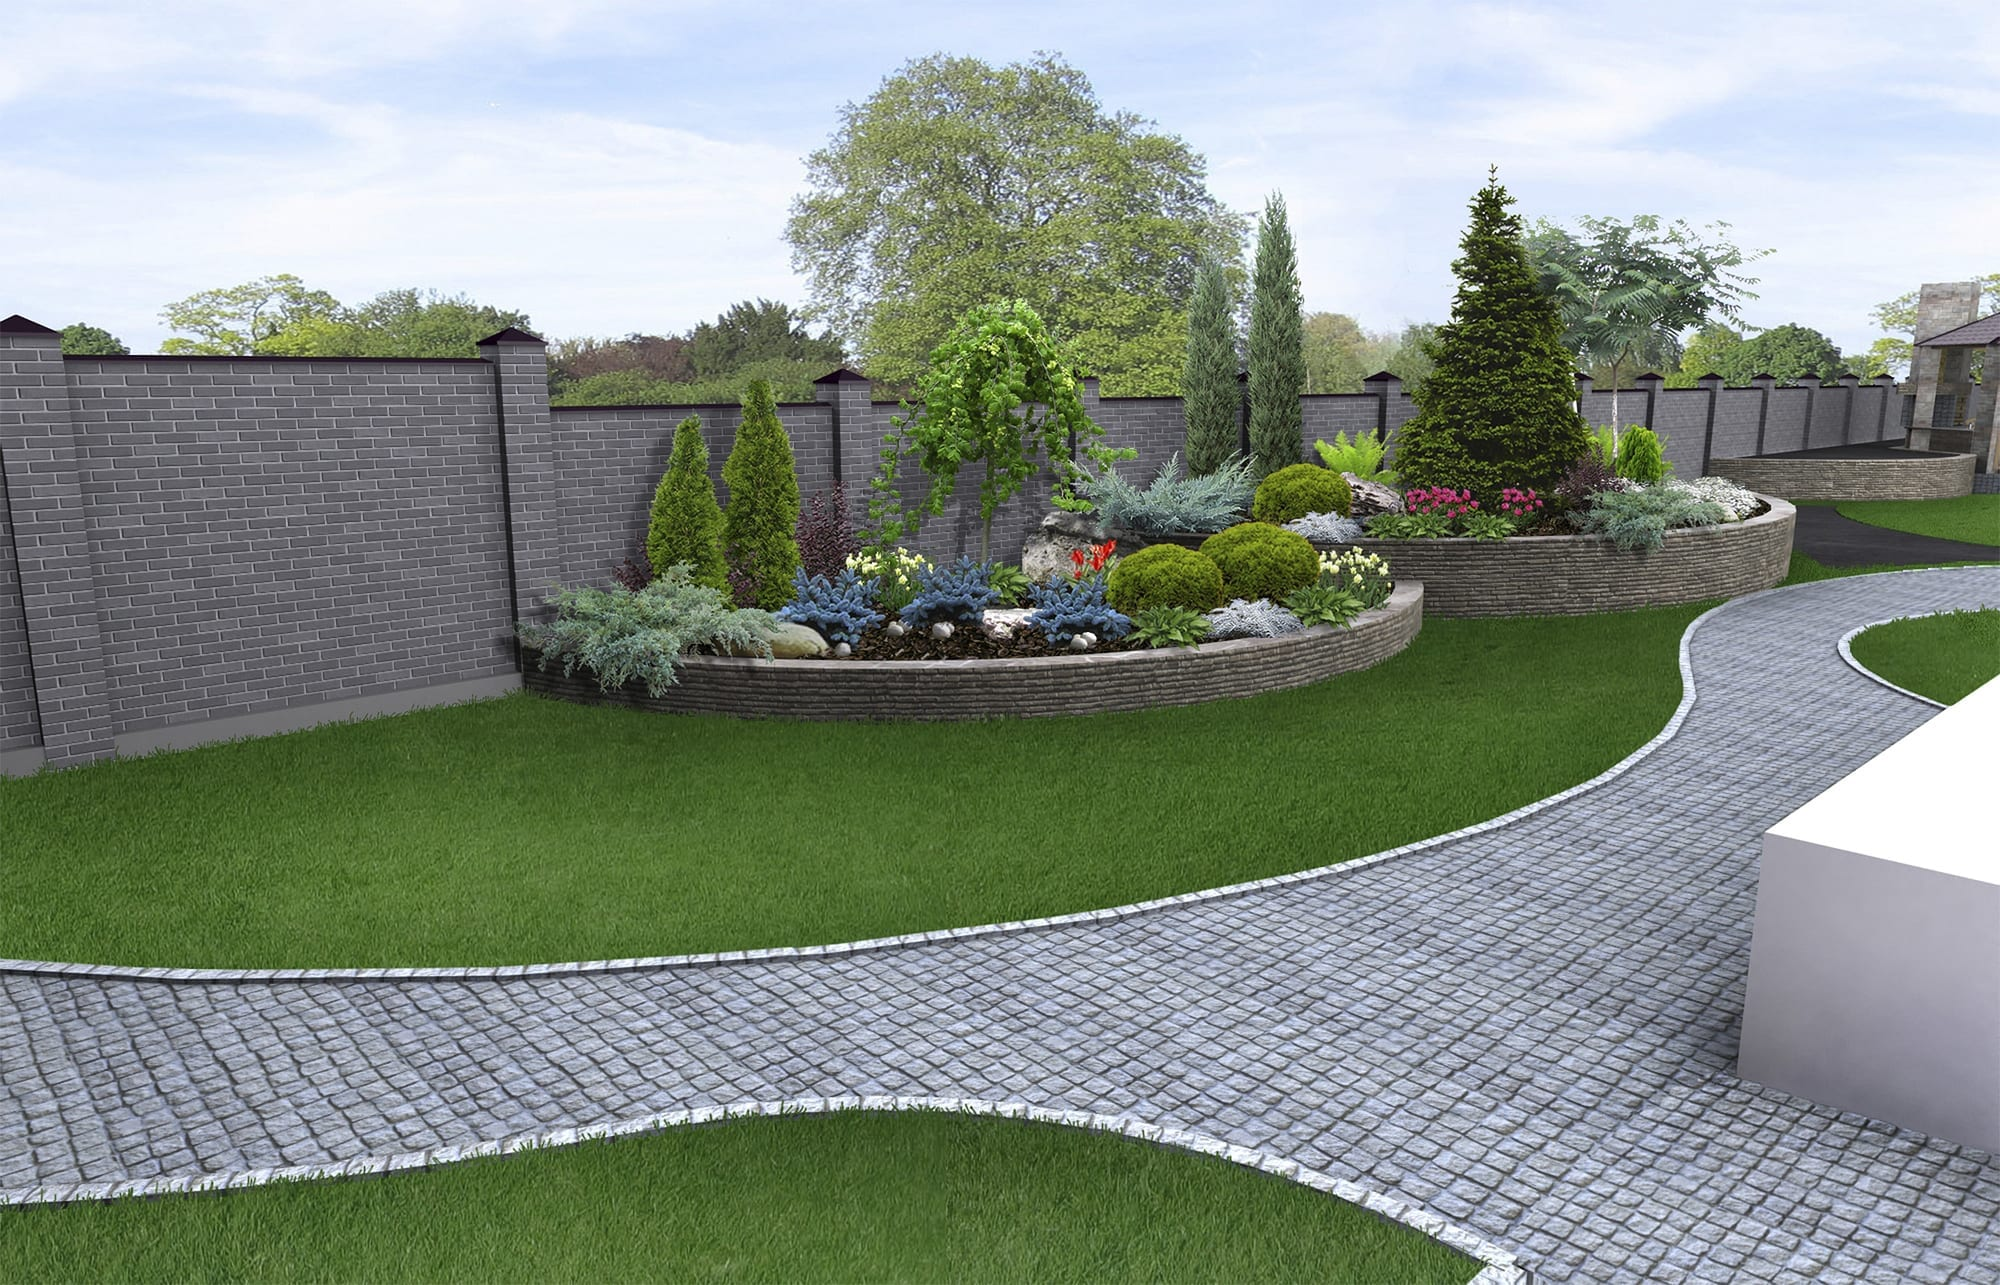 Brick edging on a lawn